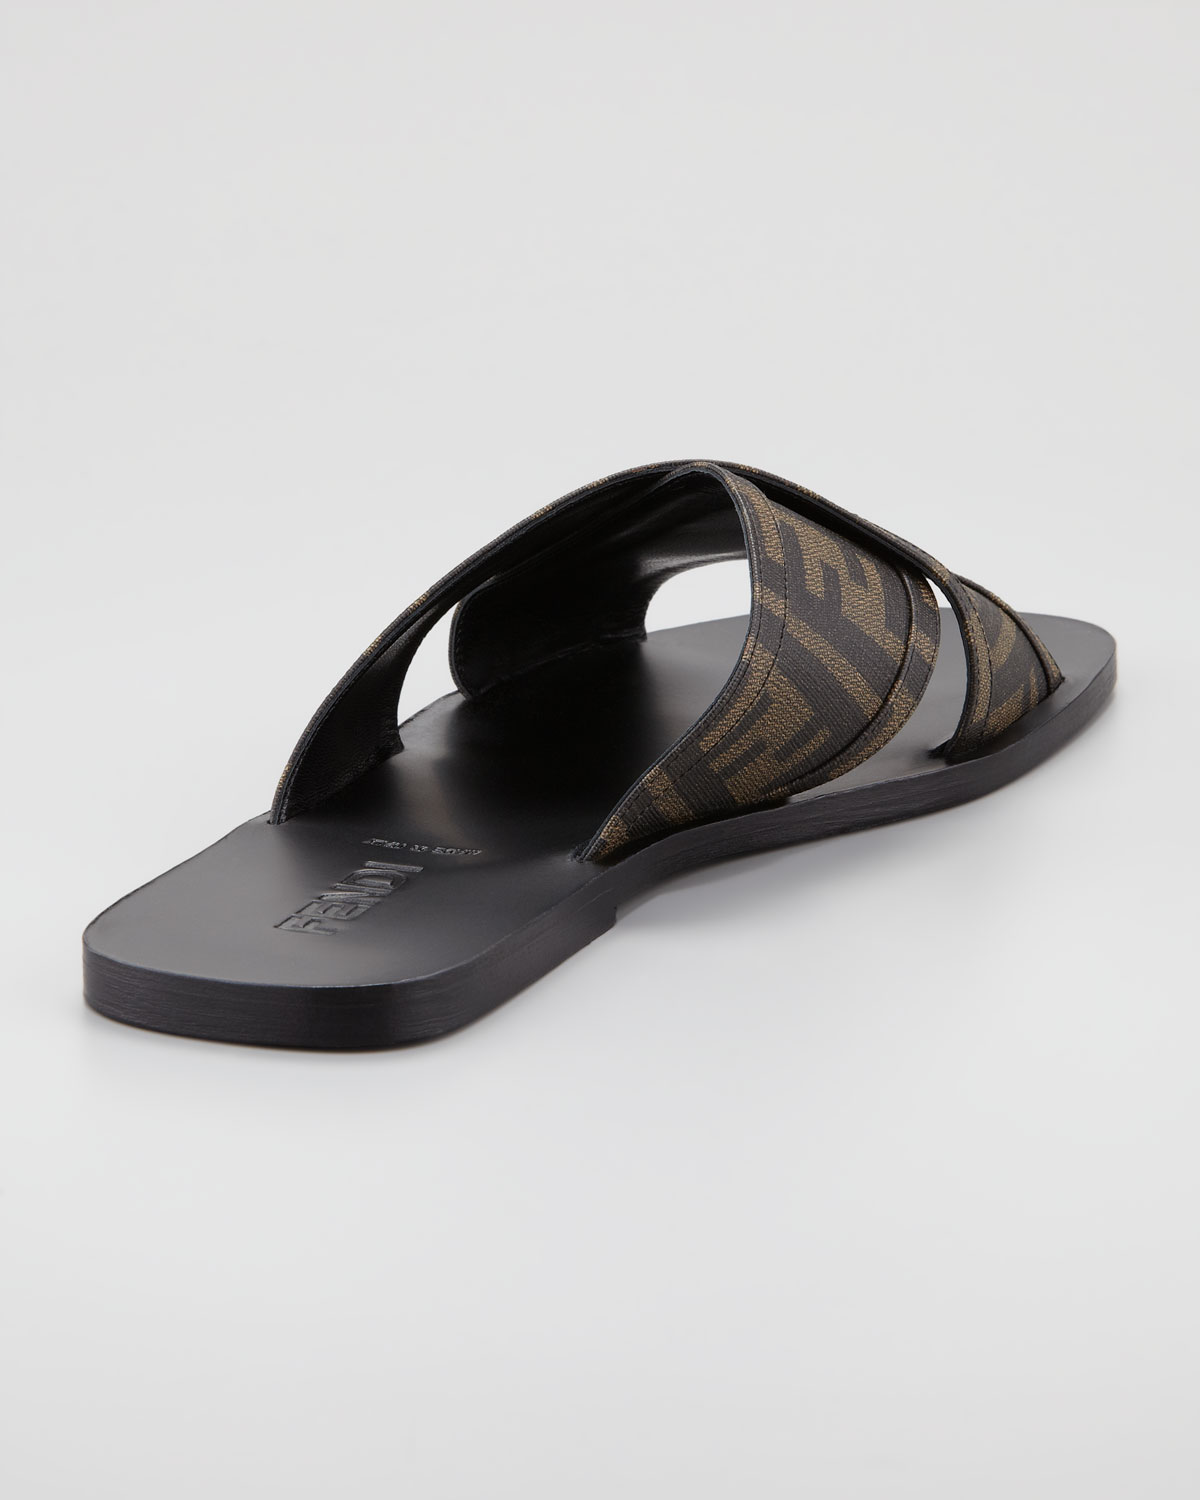 Lyst Fendi Logo Slide Sandal In Brown For Men